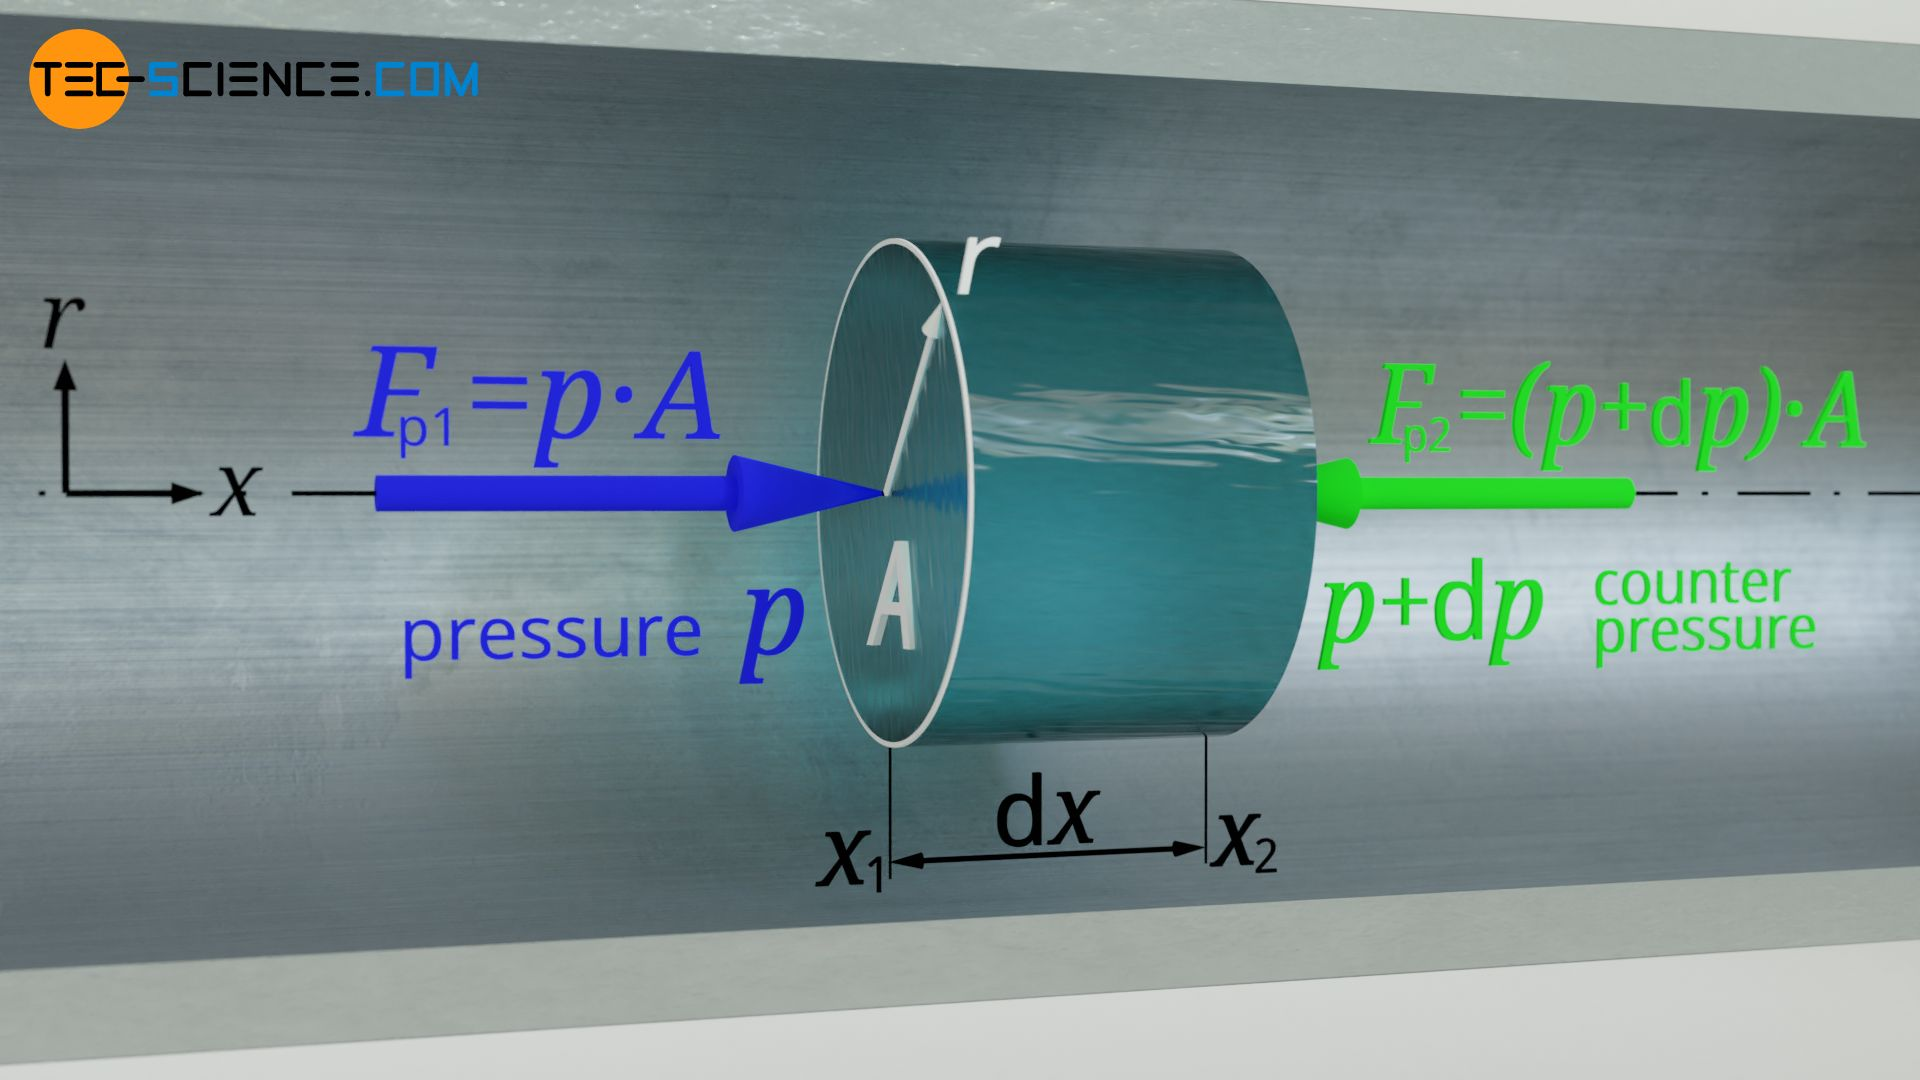 Pressure forces acting on a volume element